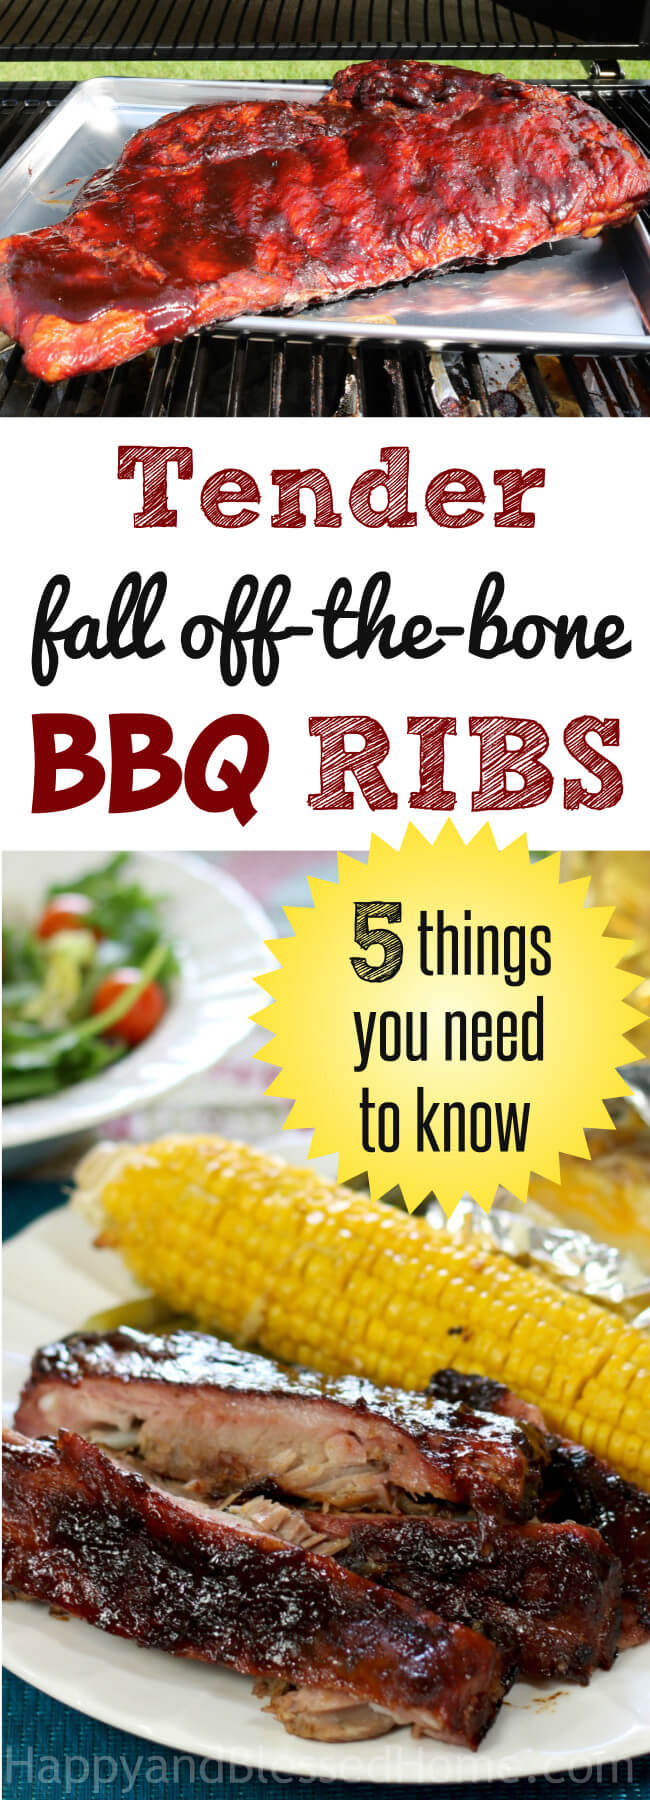 Tender fall-off-the-bone BBQ Ribs - 5 Important Things You Need to Know